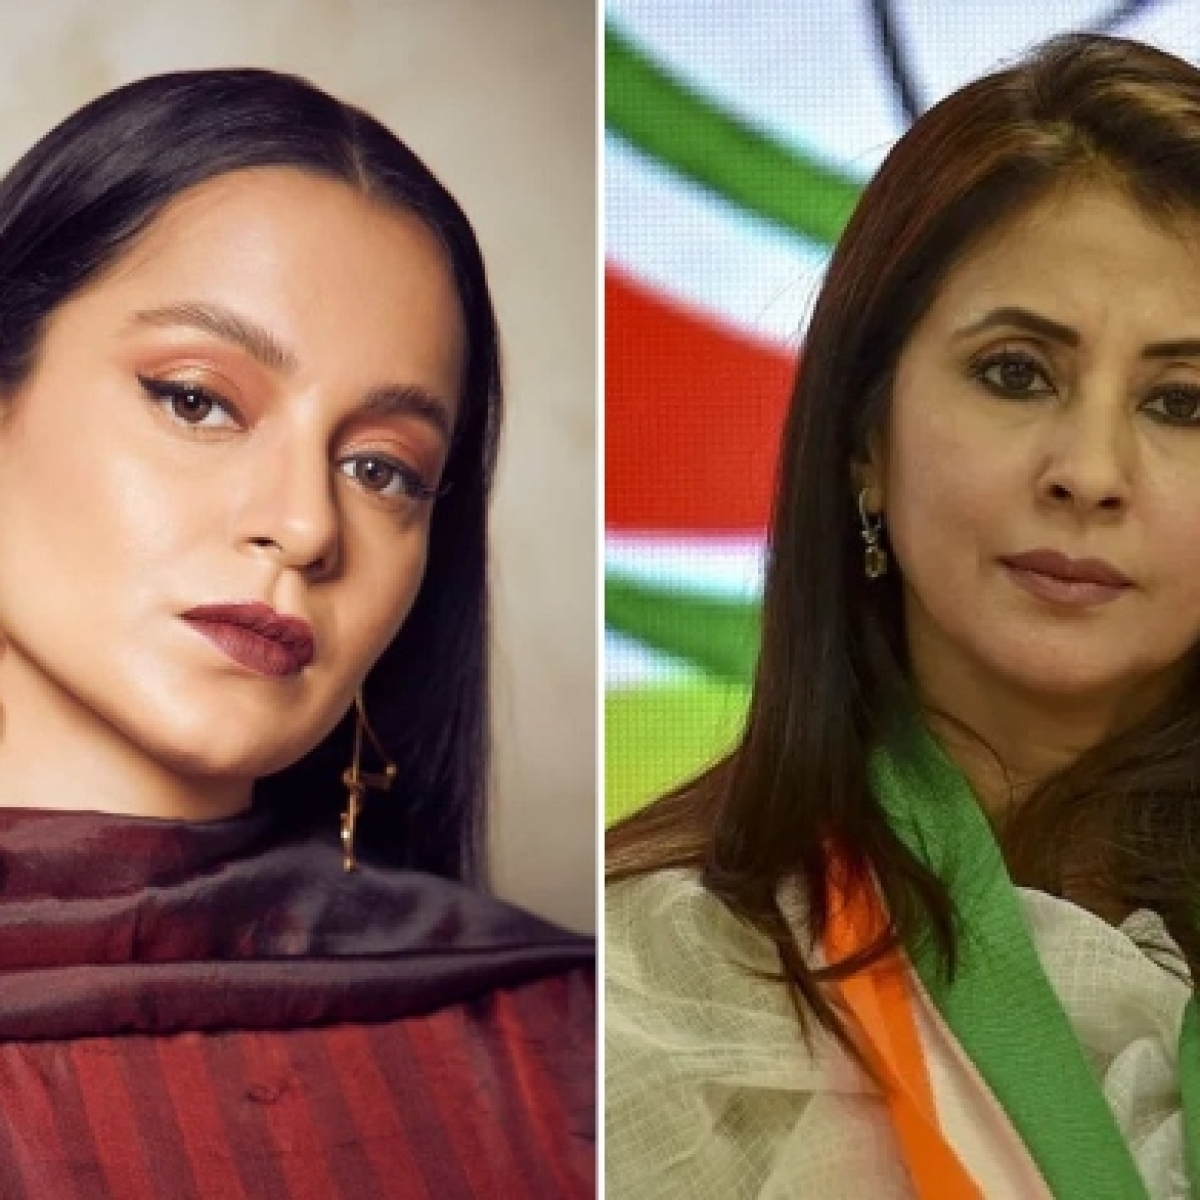 'What is she known for? Doing soft porns': Kangana Ranaut hits back at Urmila Matondkar